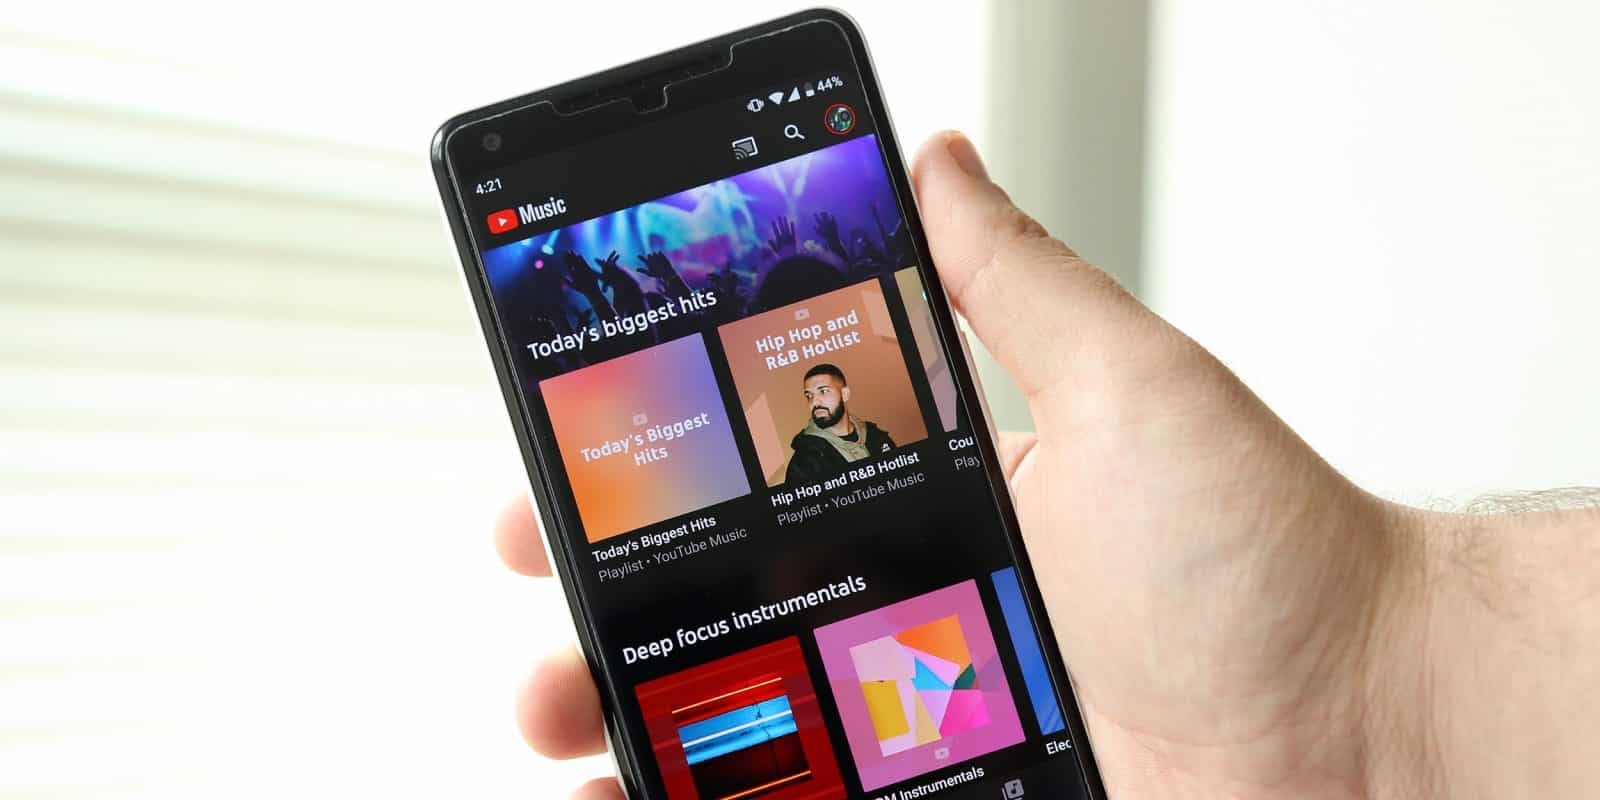 YouTube Music Finally Supports Local Files Stored On Android Devices